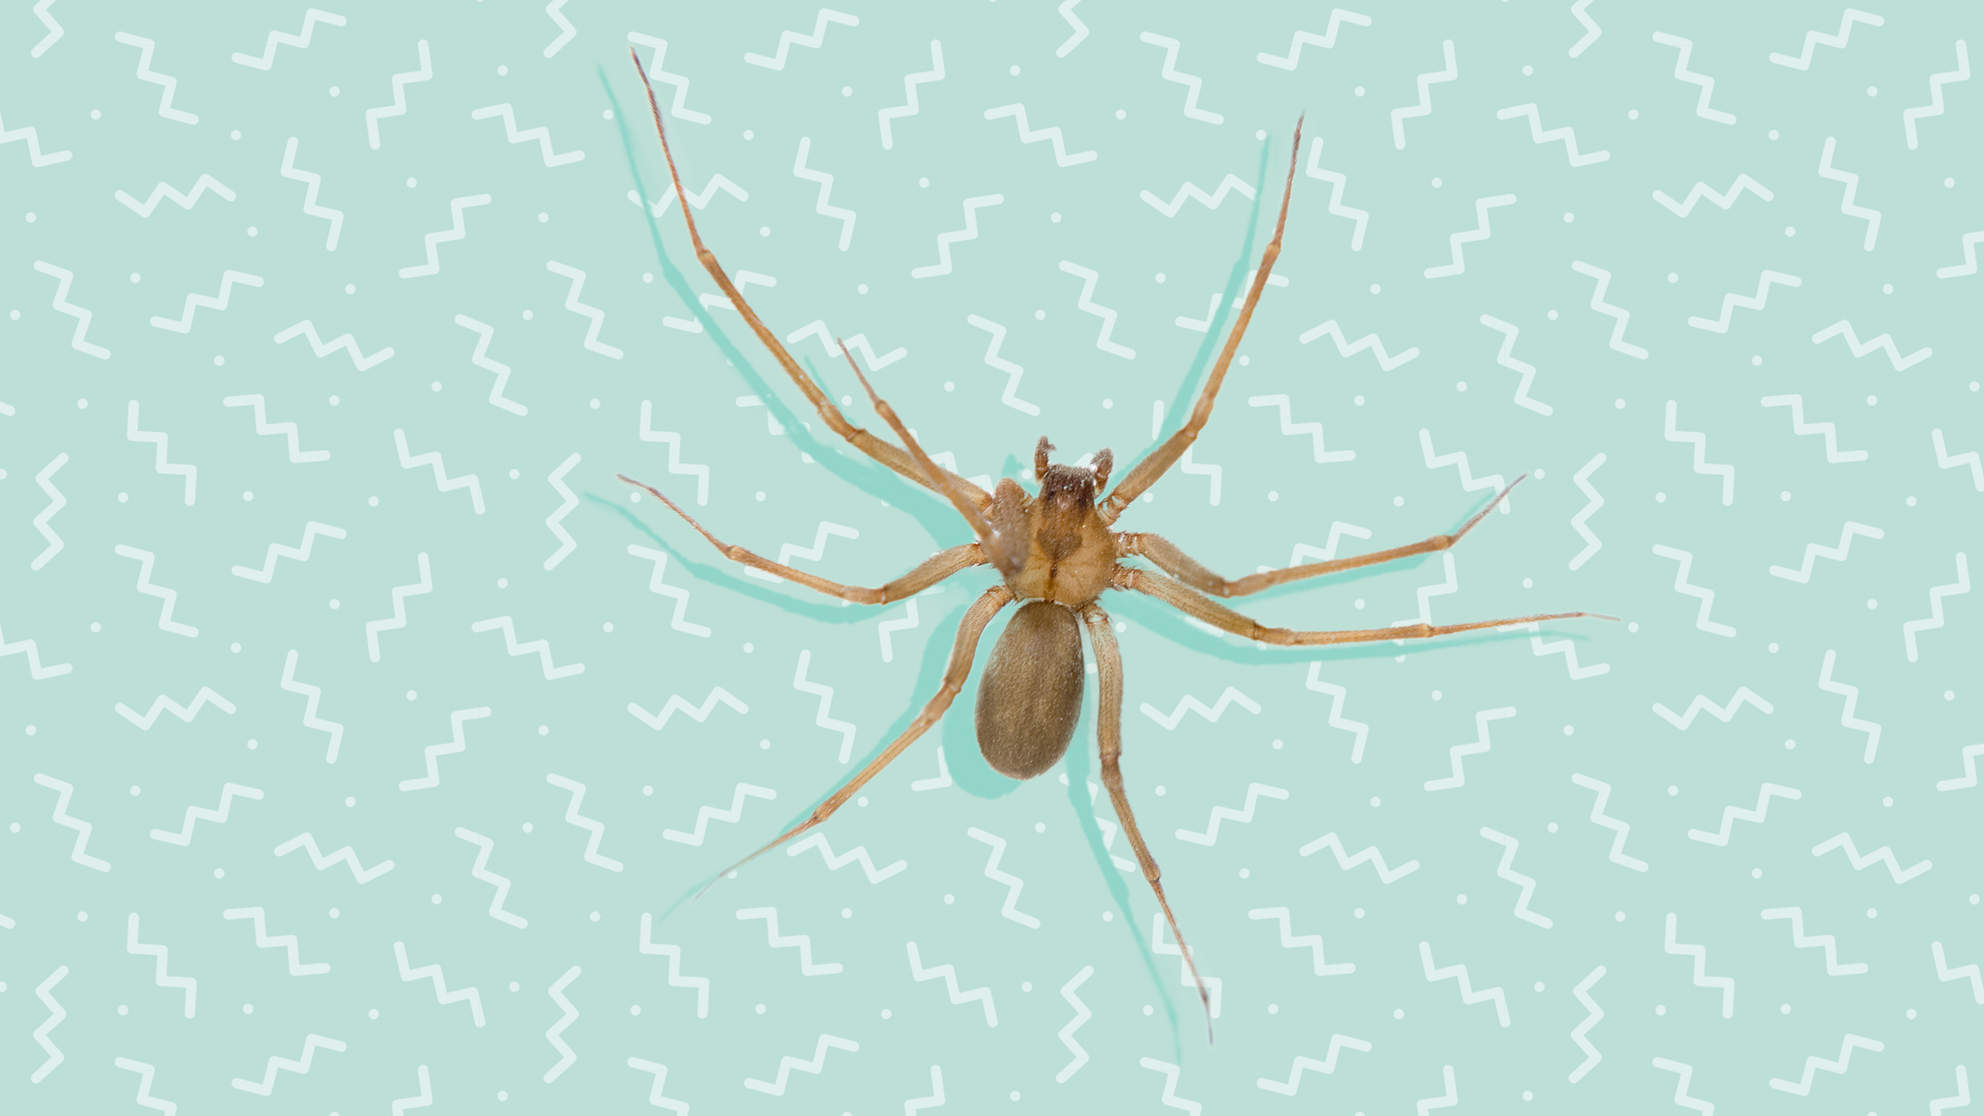 Doctors Find Brown Recluse Spider in Woman's Ear After She Complains of 'Swooshing' Sound